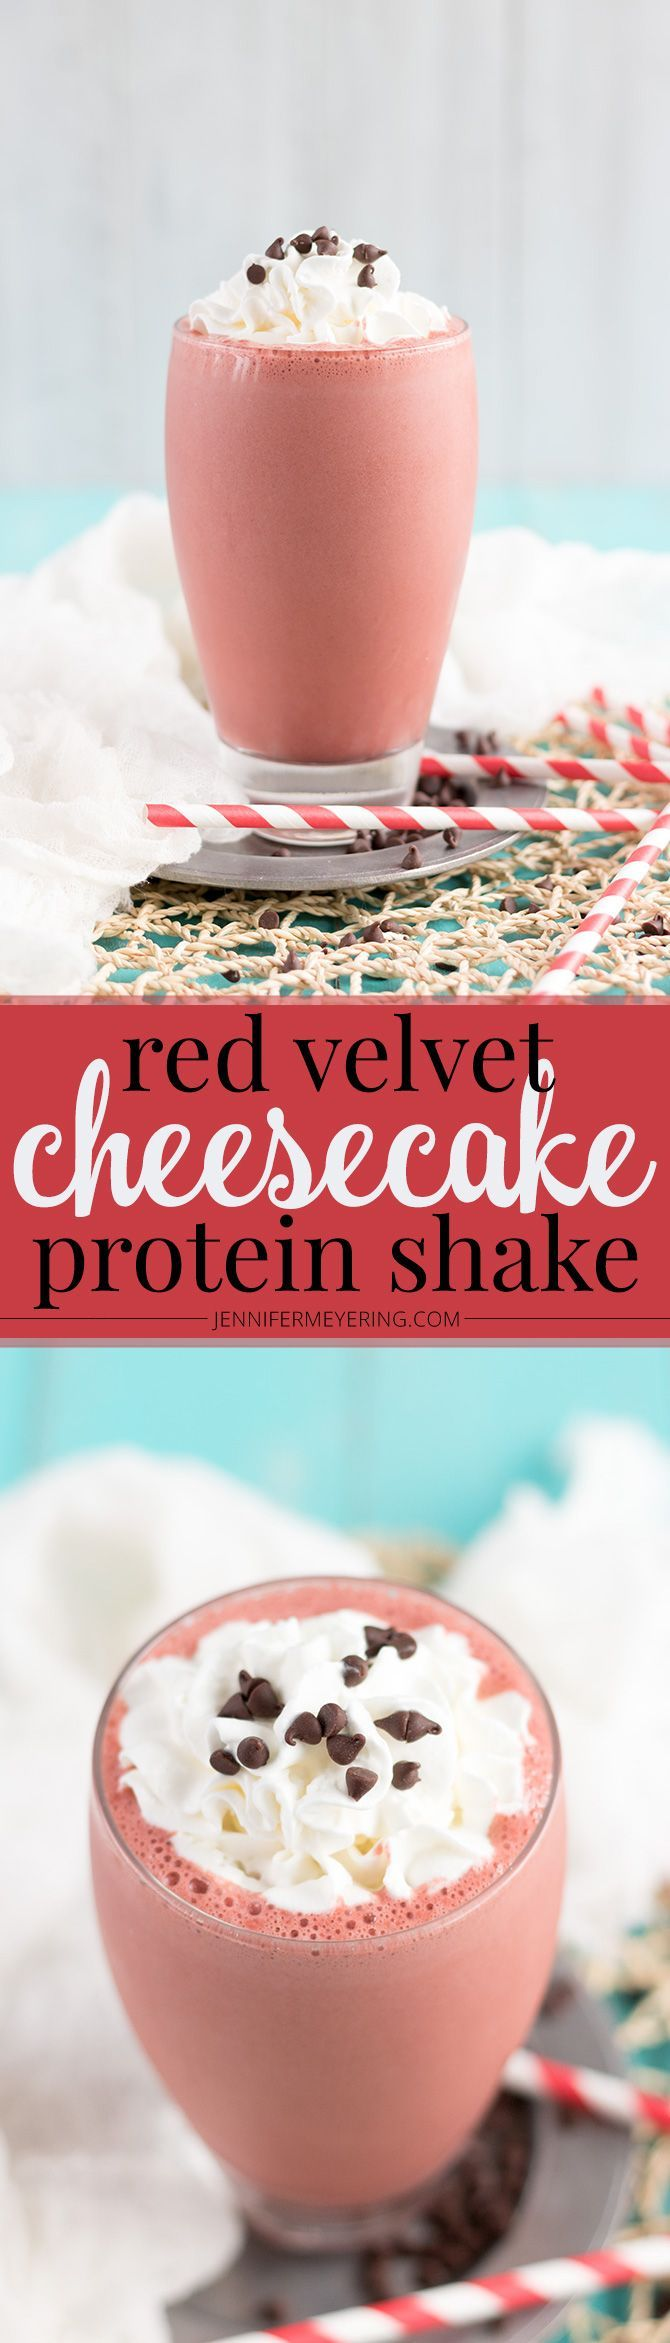 ... protein shakes on Pinterest | Top protein powders, Protein and